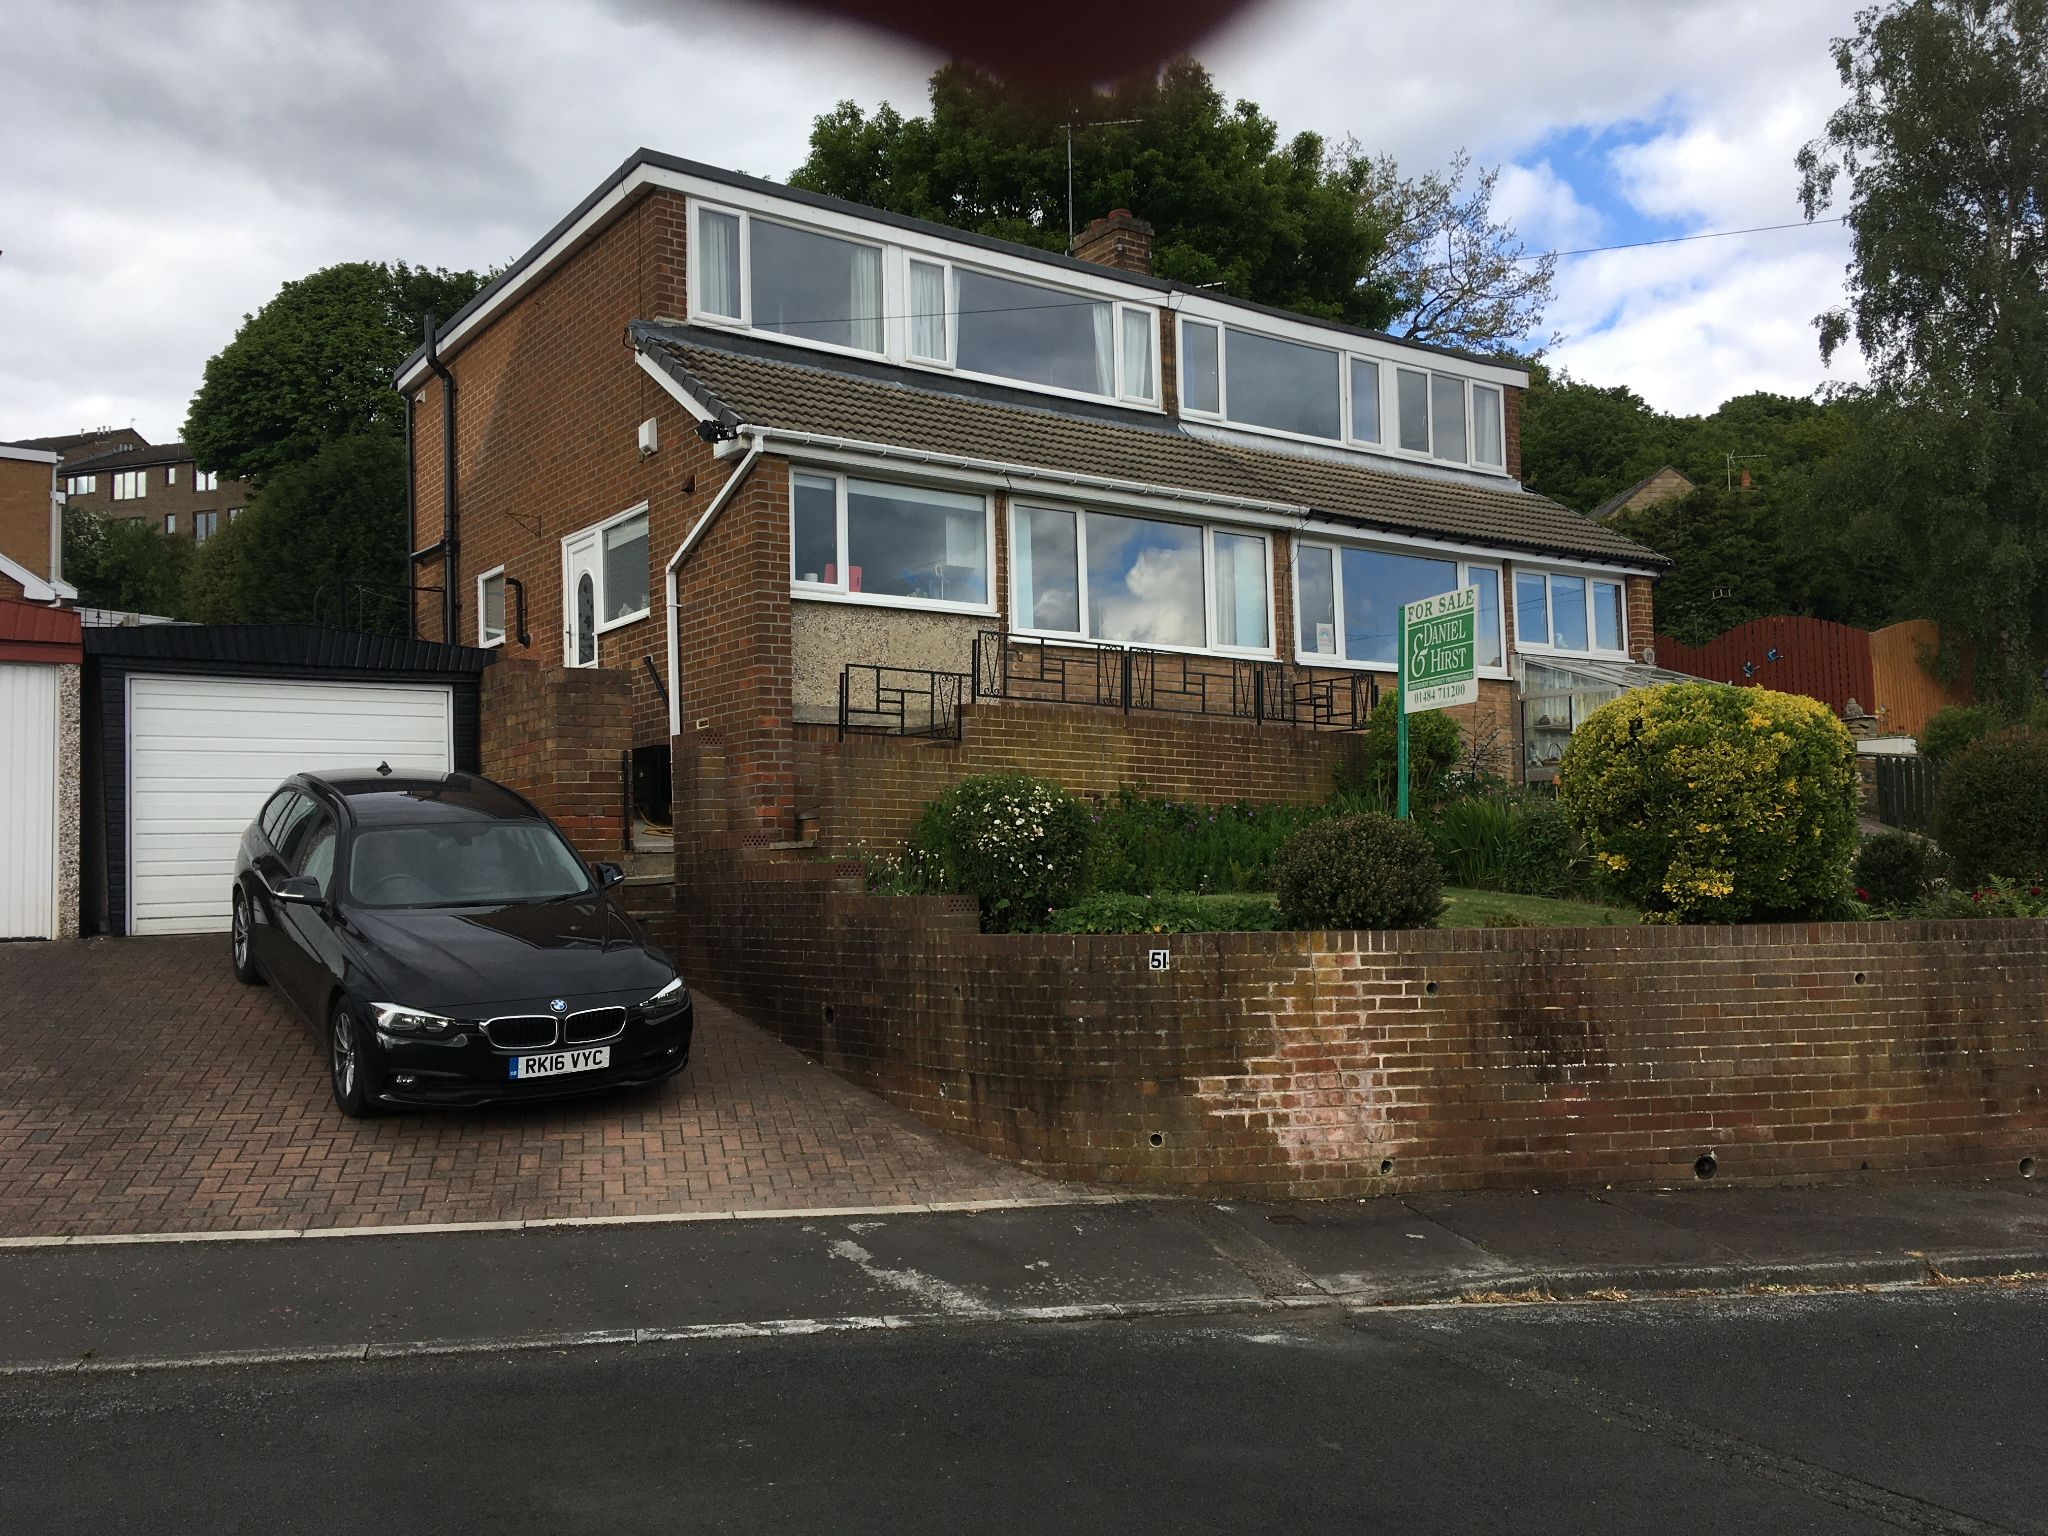 3 bedroom semi-detached house SSTC in Halifax - Main.